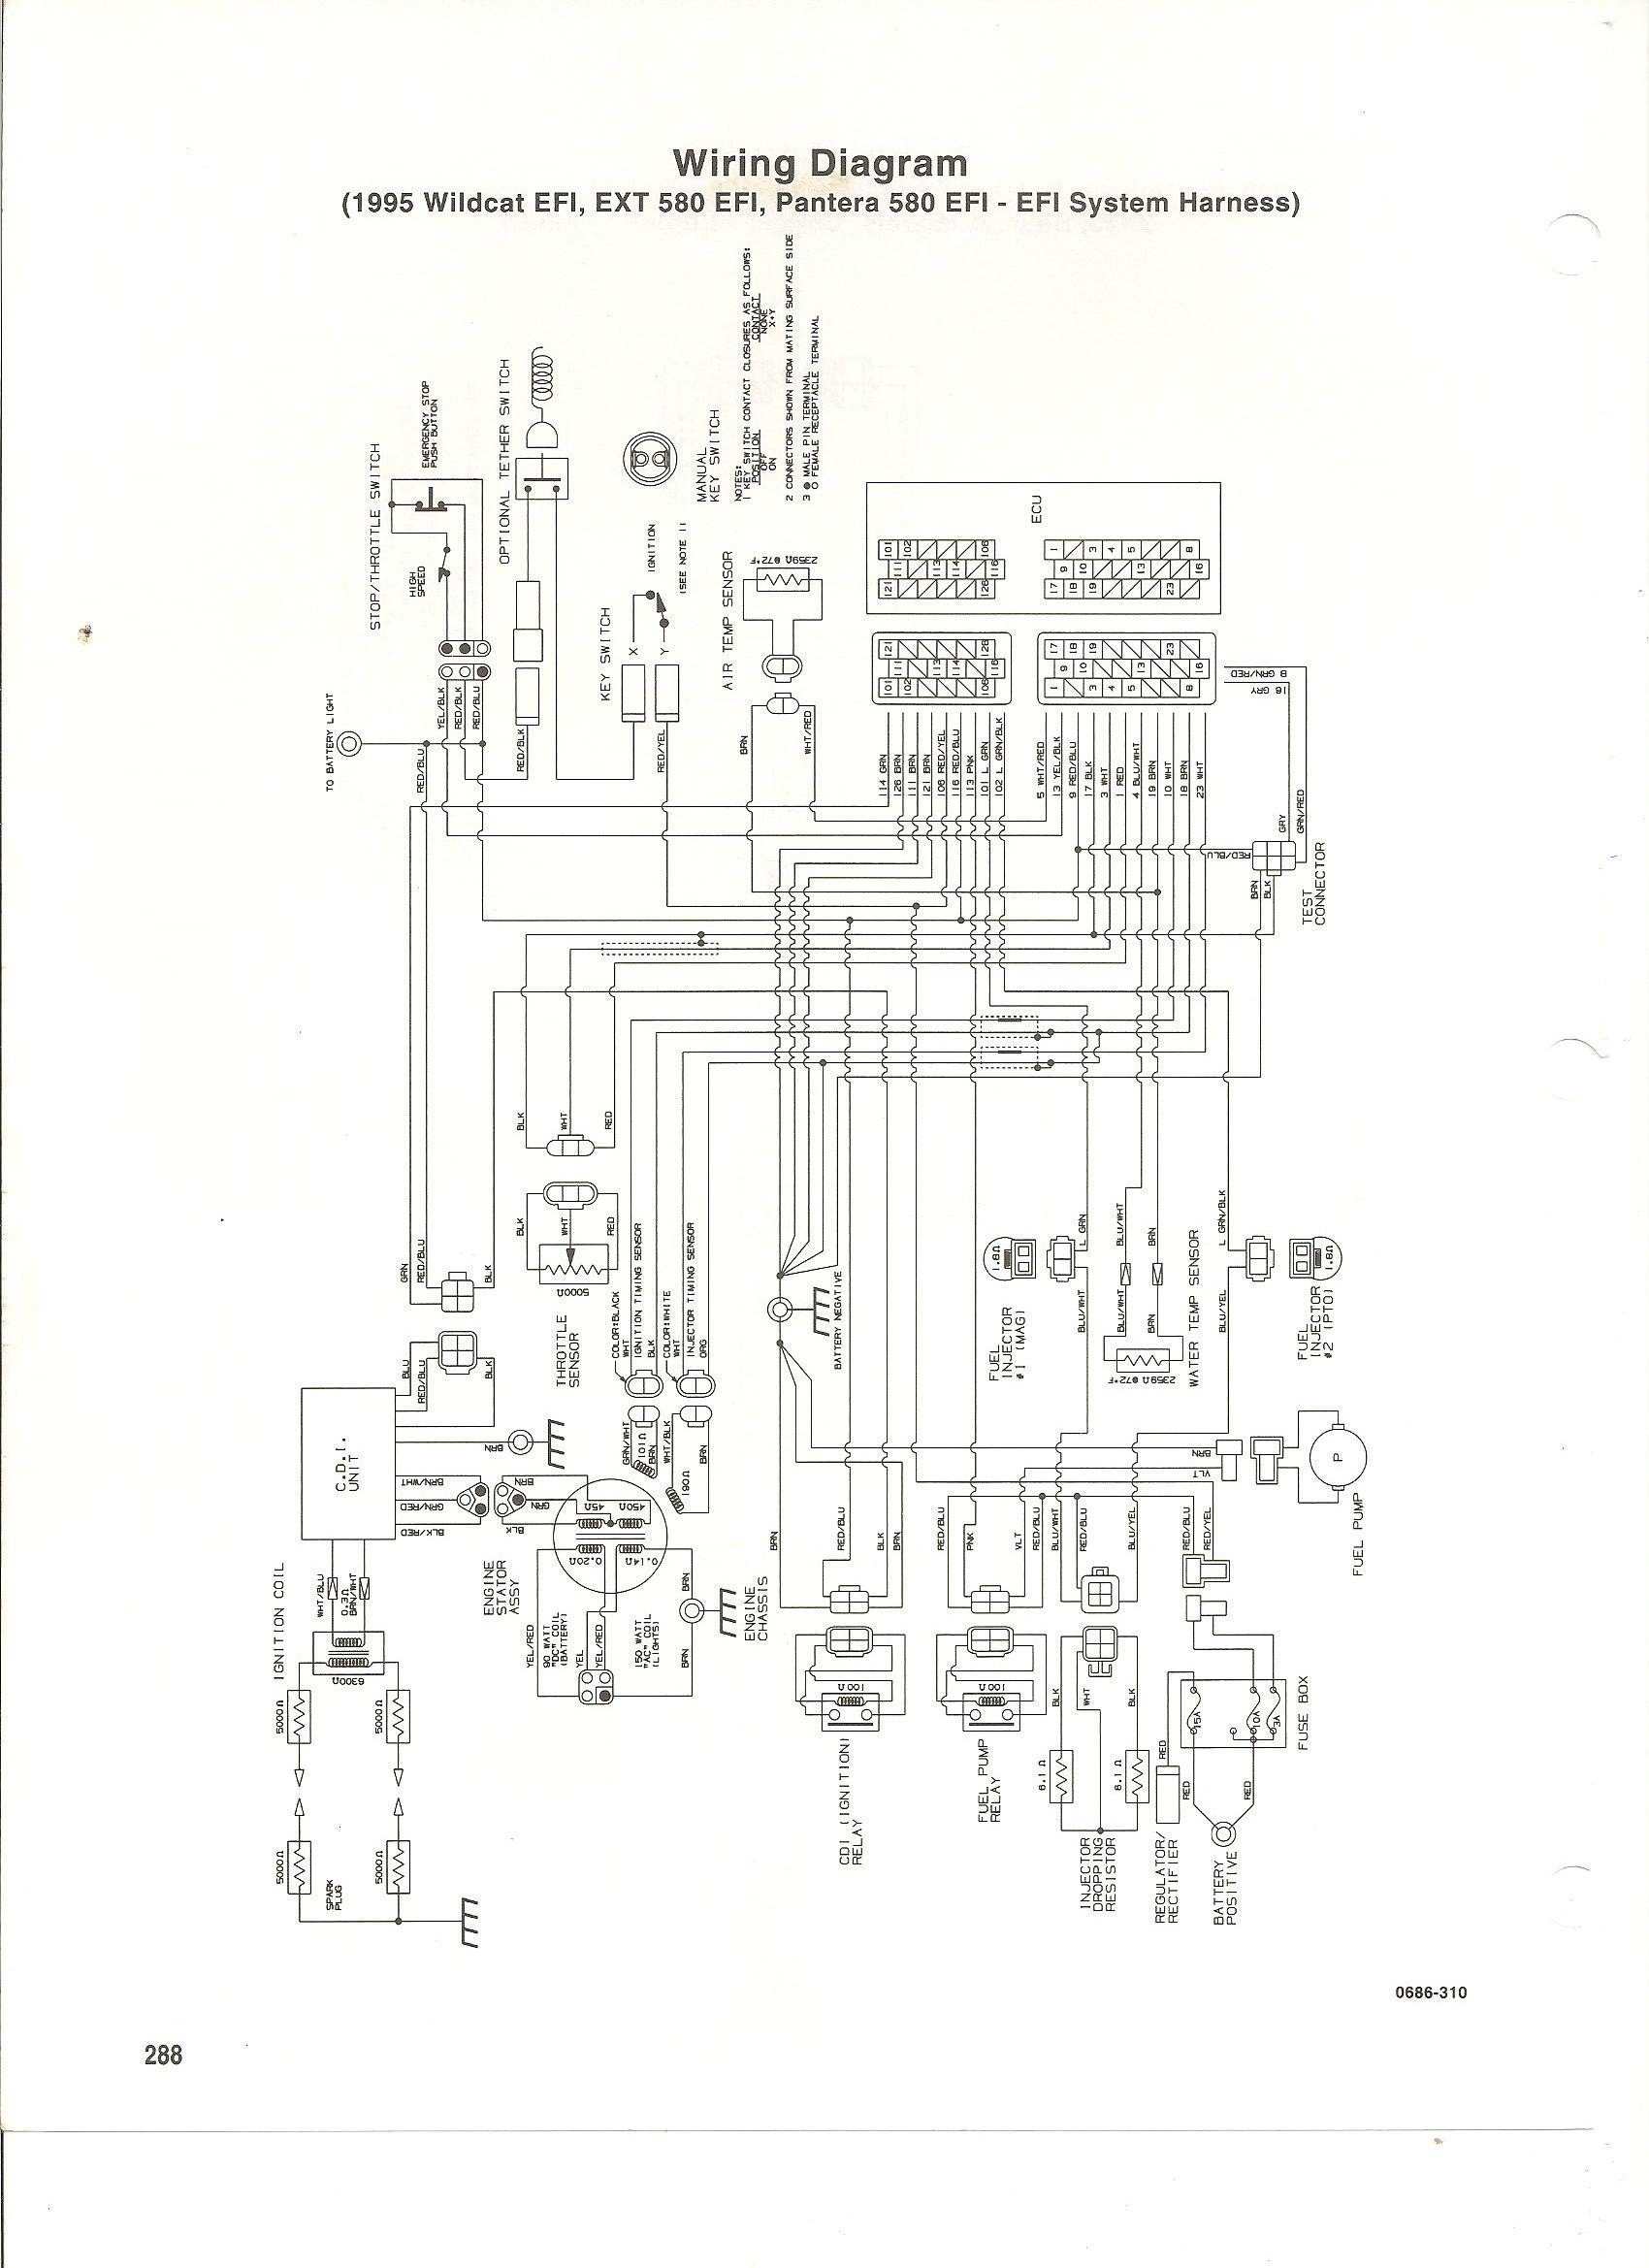 Rectifier Wiring Diagram For 1995 Zx6